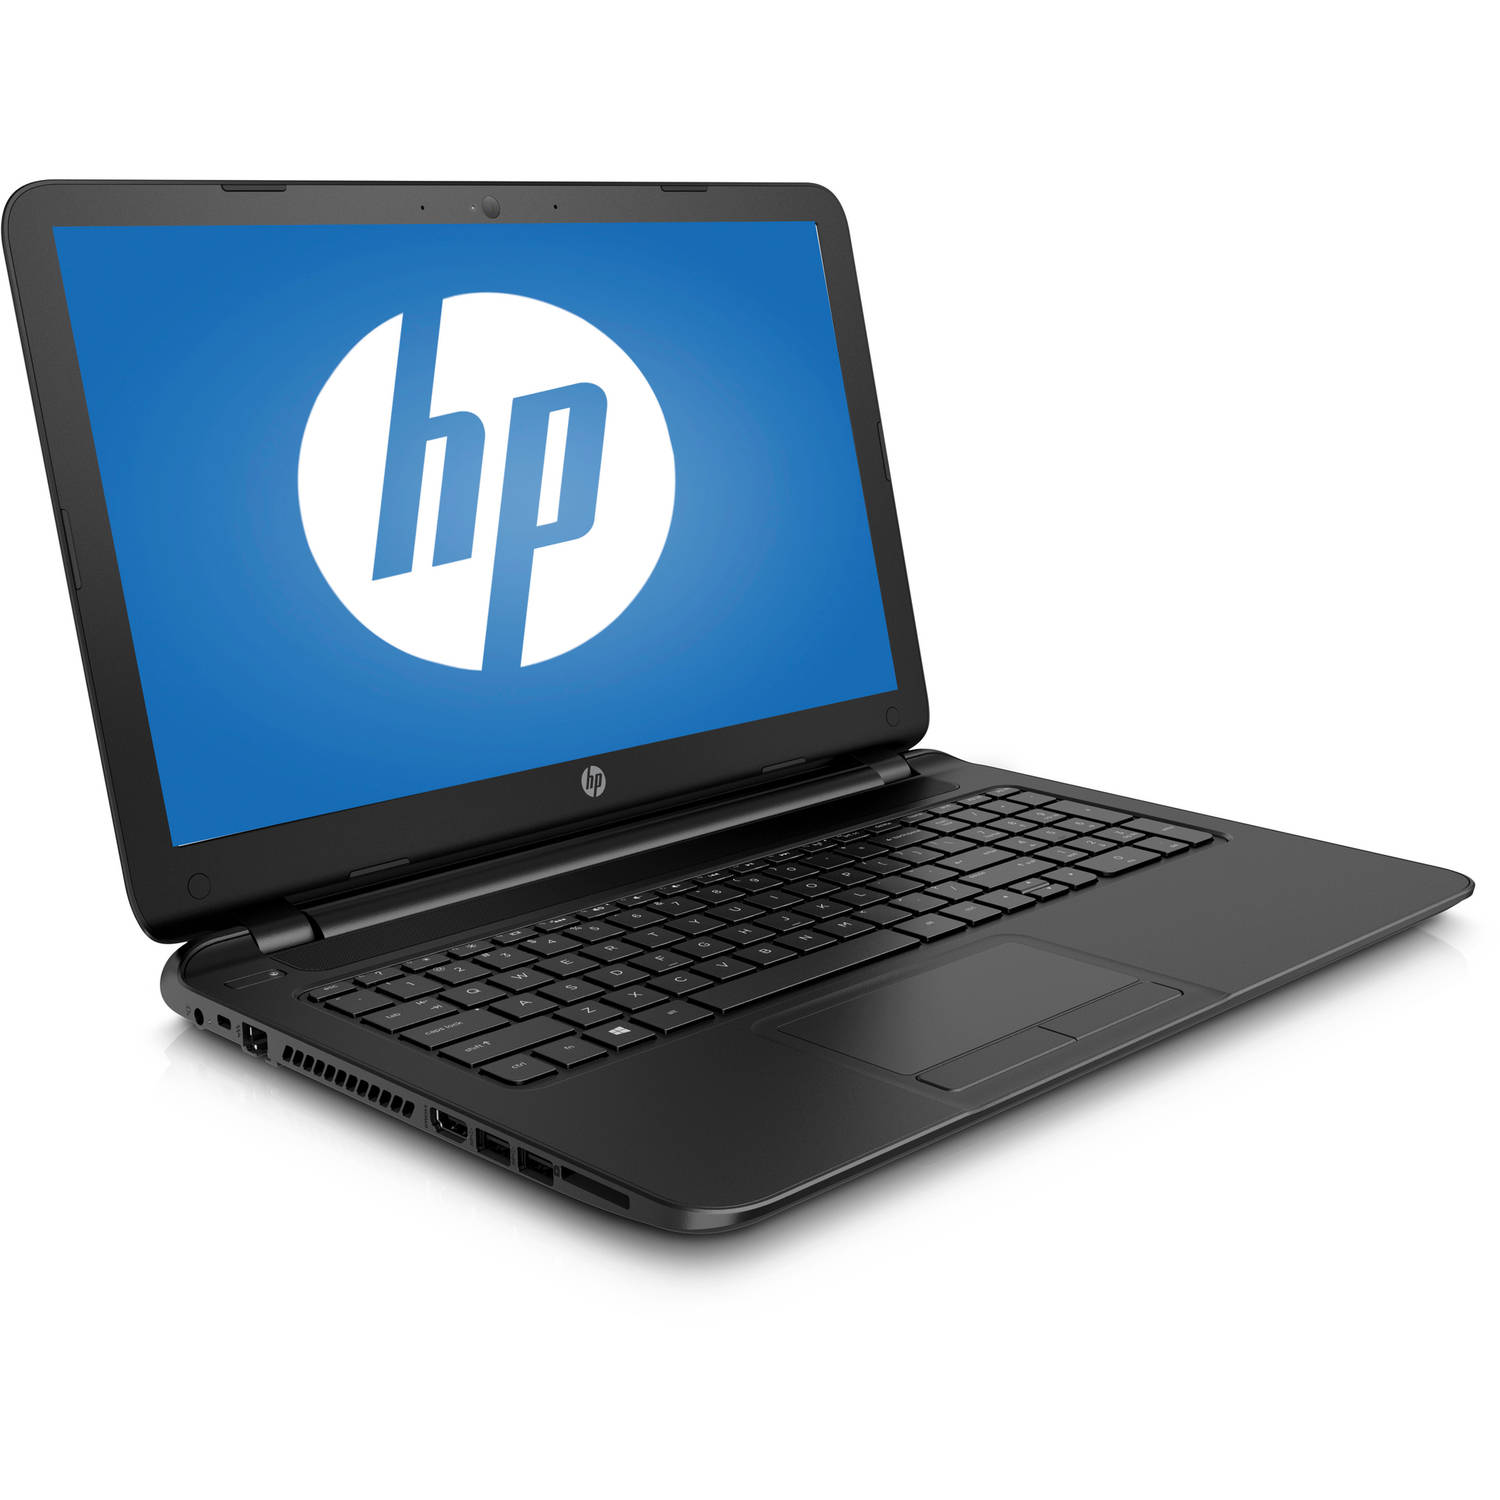 Hewlett Packard Refurbished HP Black 15.6 15 - F039WM Laptop PC with Intel Celeron N2830 Processor, 4GB Memory, 500GB Hard Drive and Windows 8.1